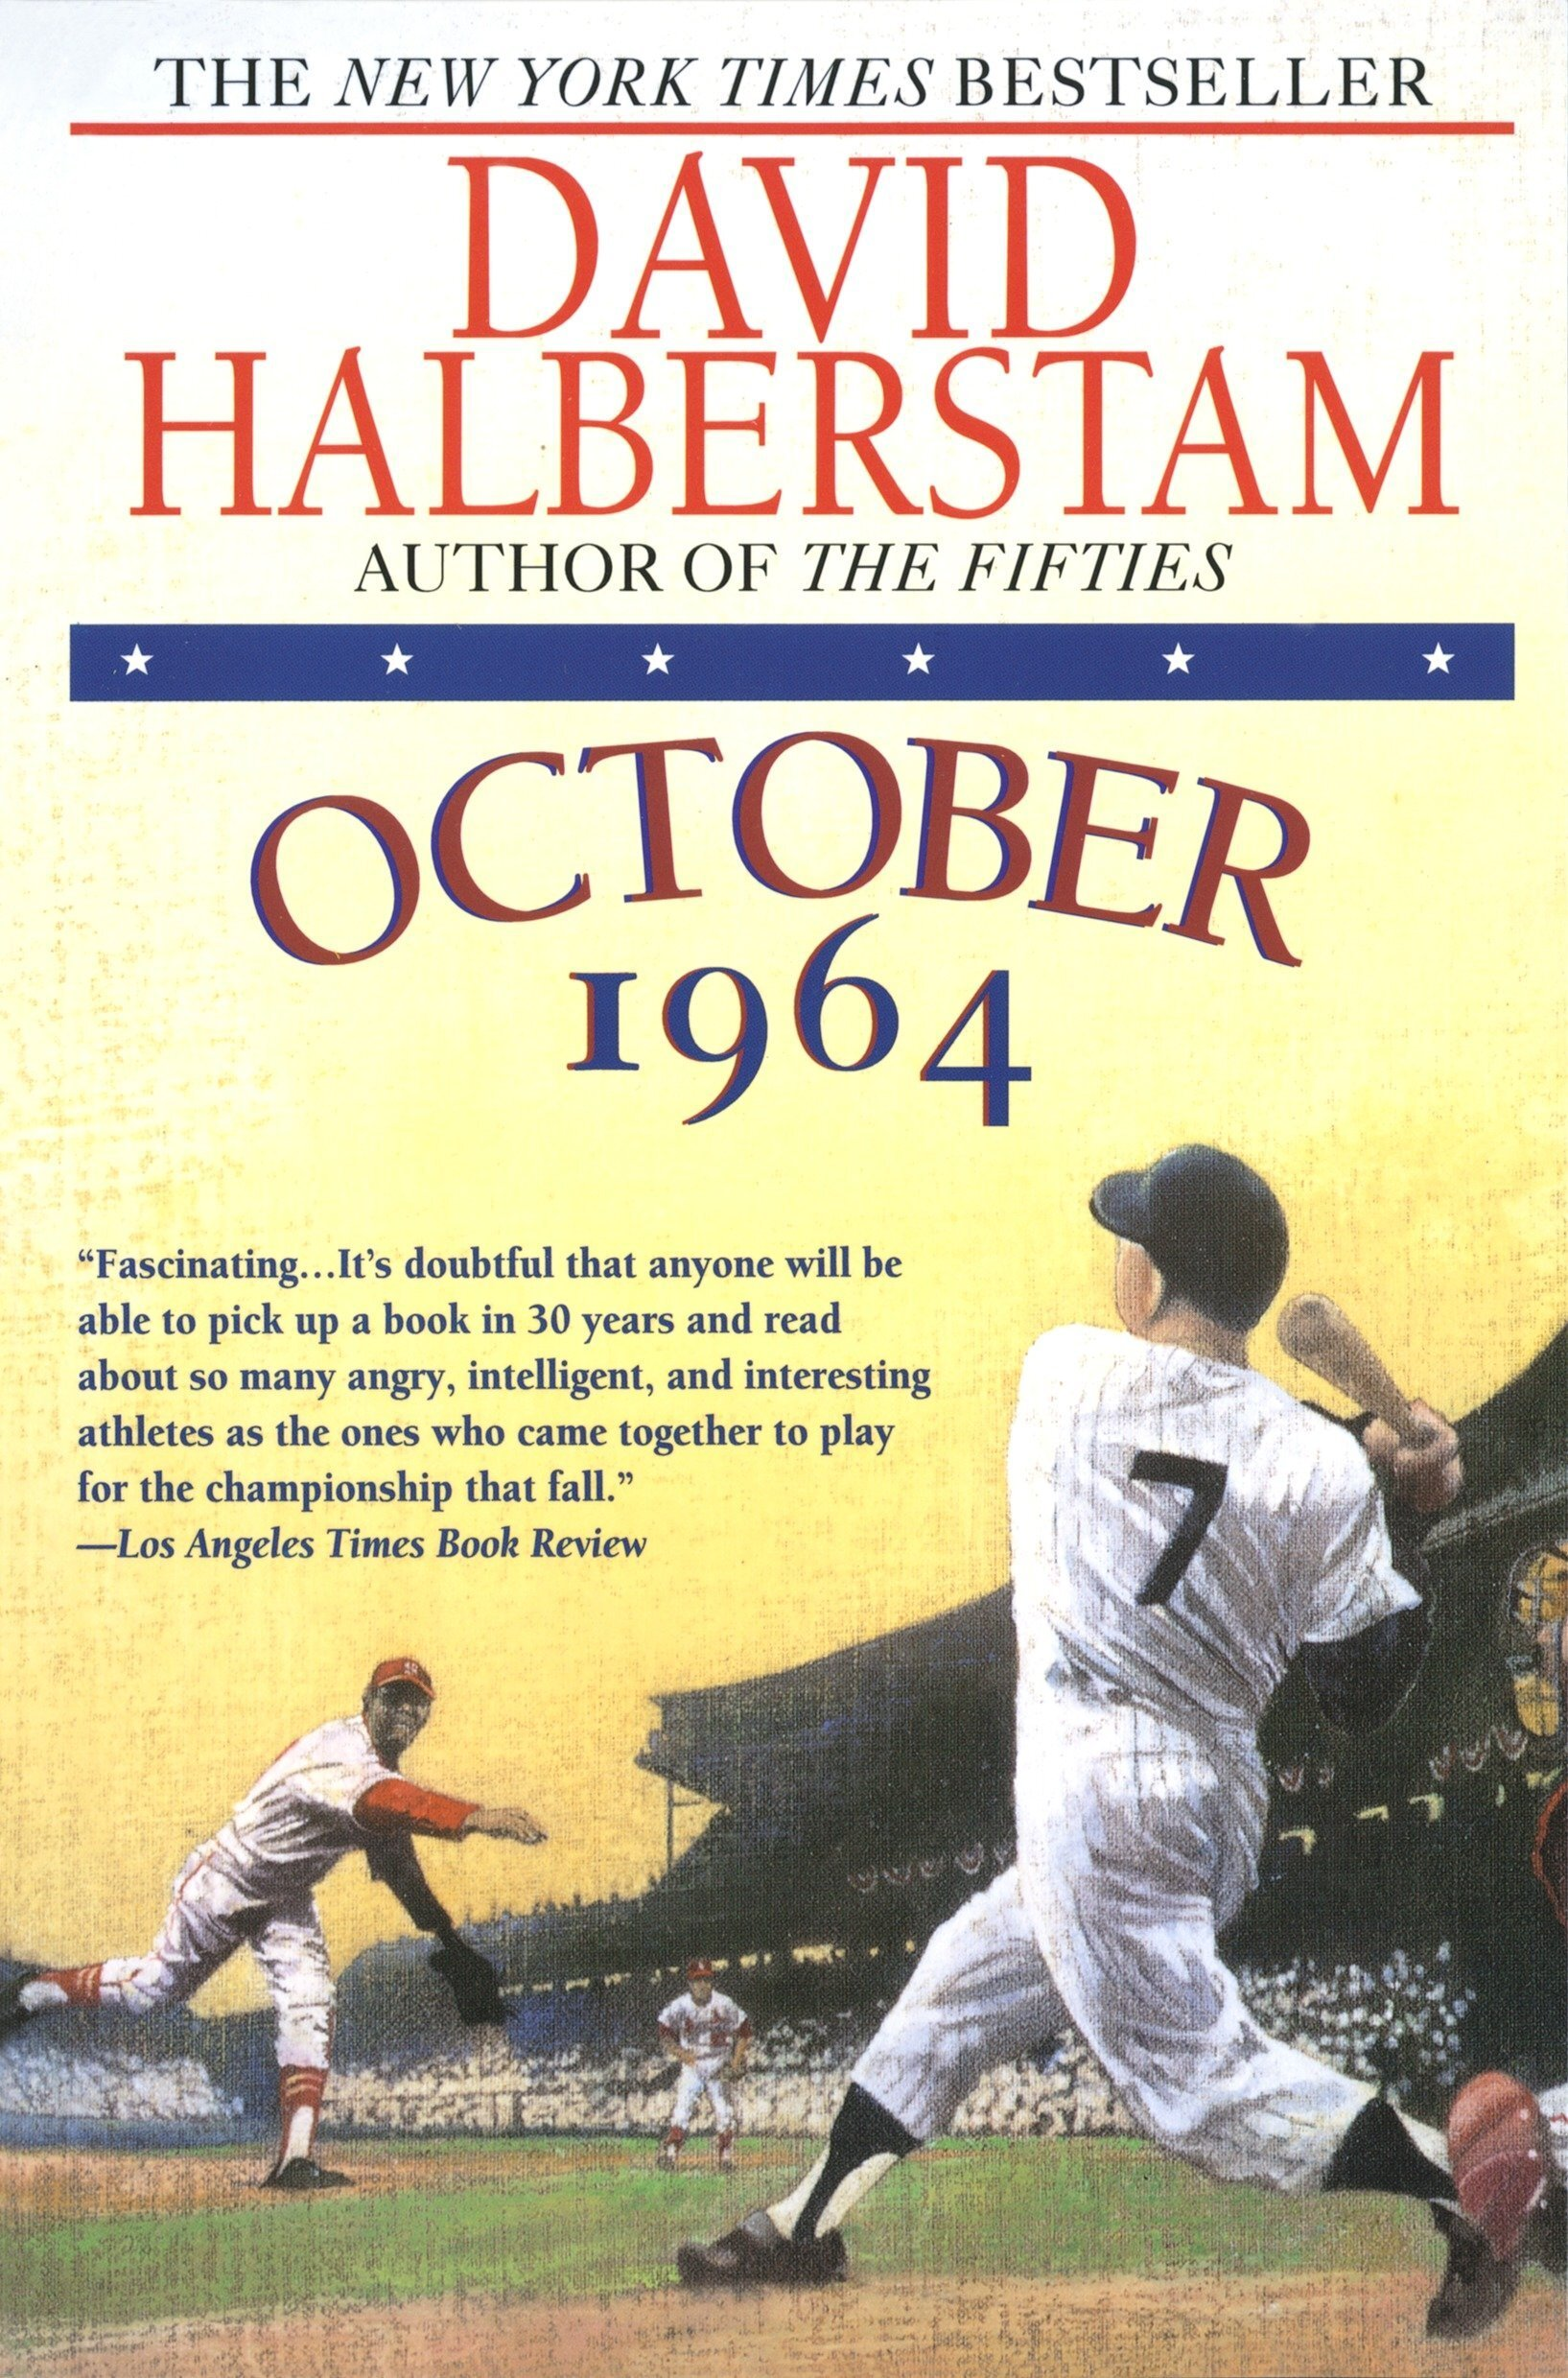 October 1964 by David Halberstam.jpg